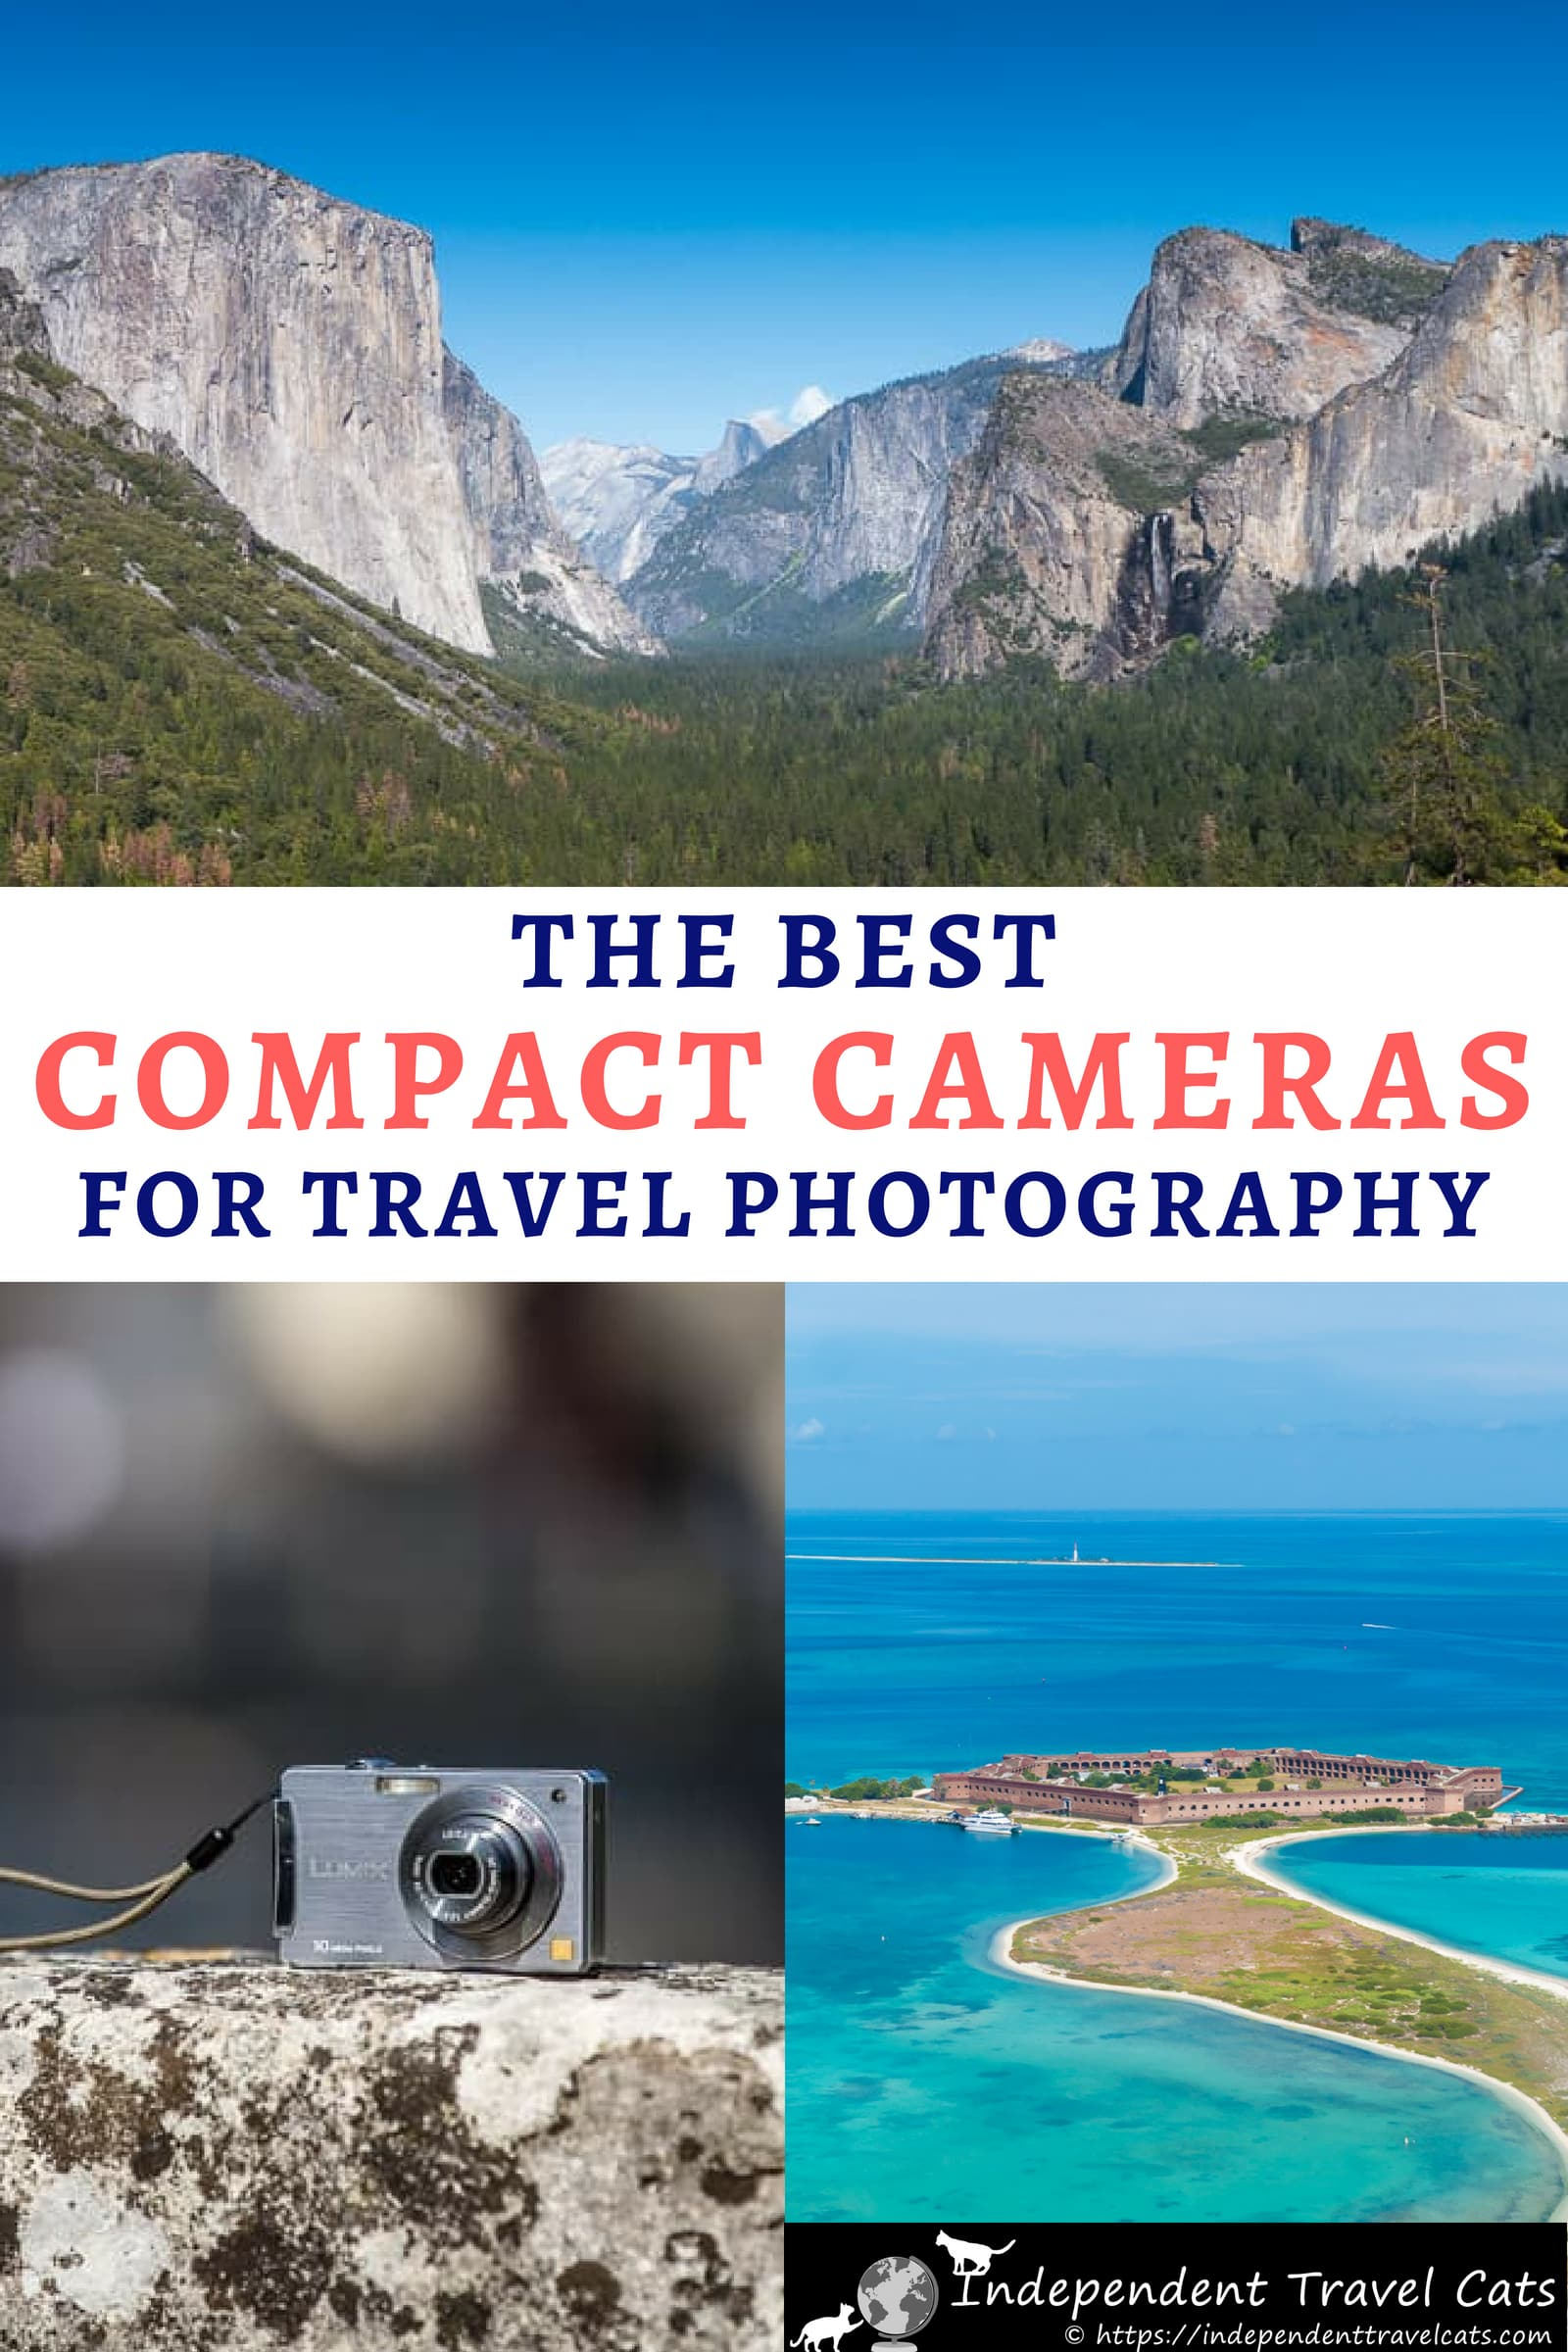 A guide to the best compact cameras for travel at every price point. We'll help you decide how to choose the best compact camera and share a list of the best compact point-and-shoot cameras currently available for any budget. We also give some tips on how to make the most of your point-and-shoot camera when you take it on your next vacation. #travelcamera #travelphotography #travel #compactcameras #pointandshootcamera #photography #budgettravel #cameras